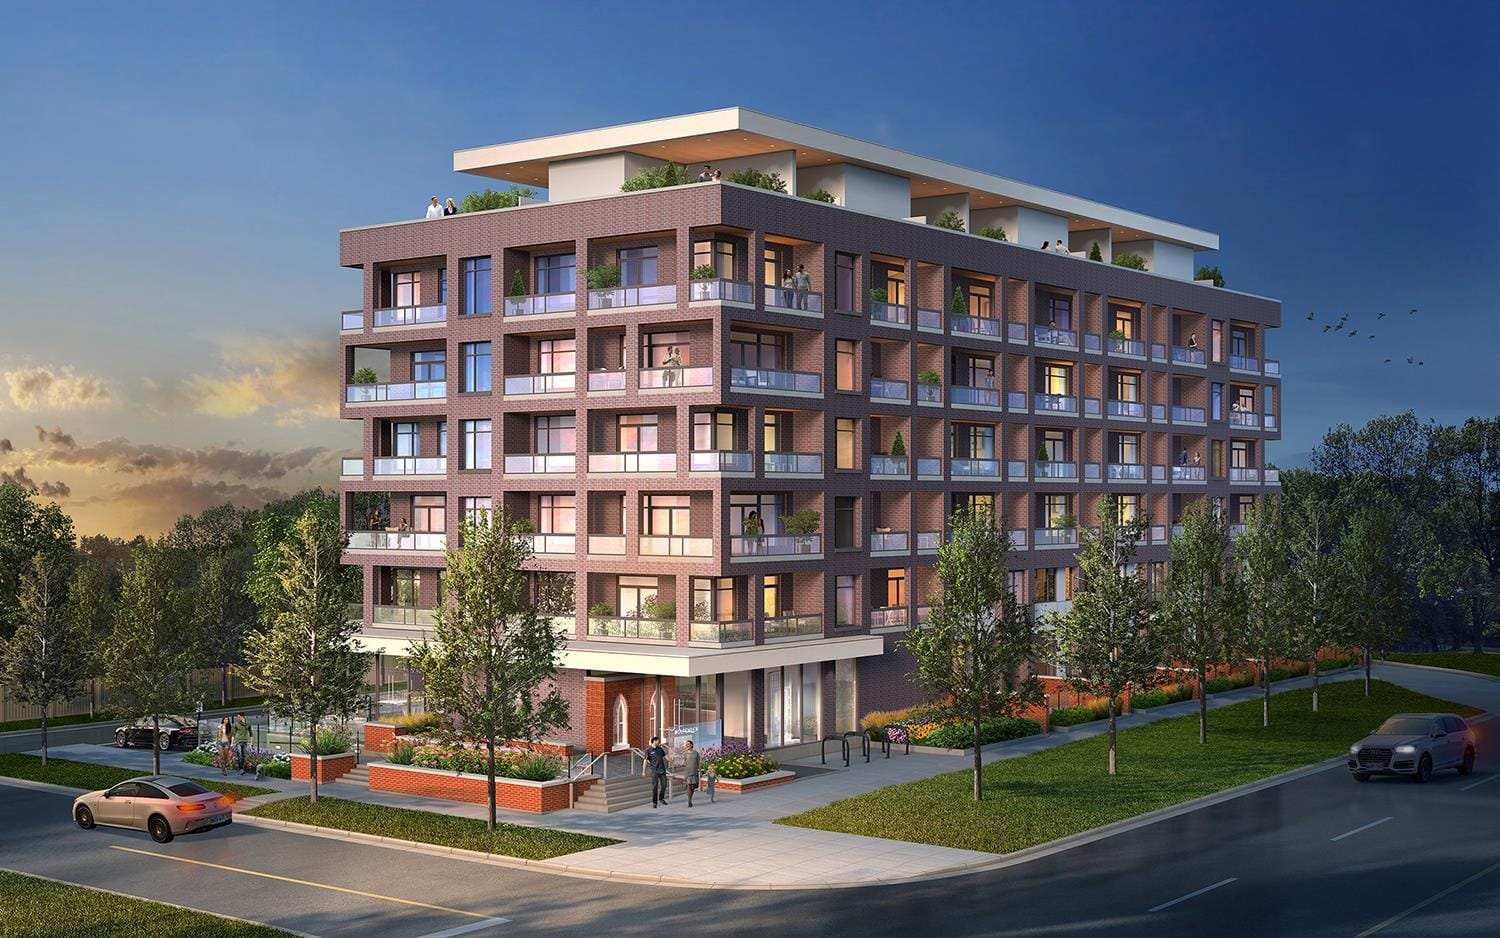 Rendering of The Charlotte Boutique Condos in Whitby exterior at dusk.